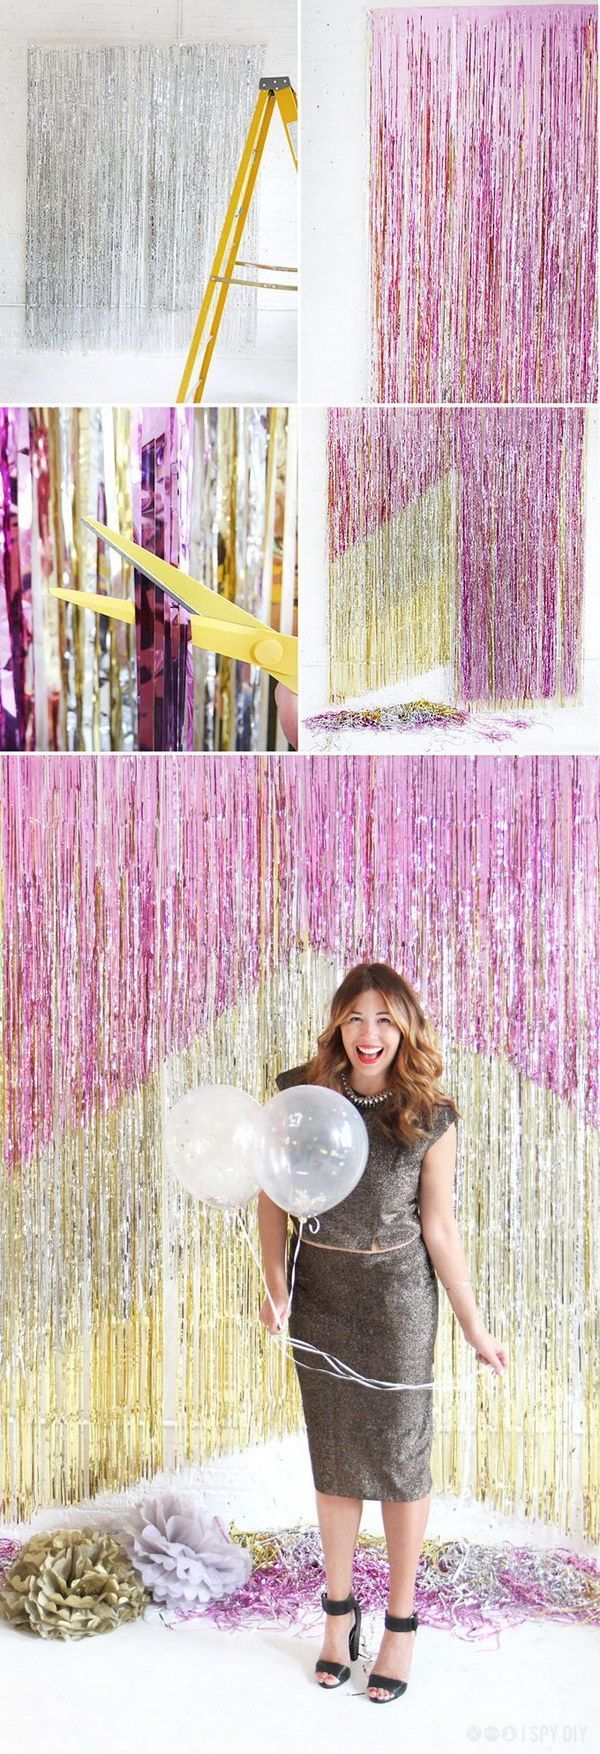 52 Awesome New Year Party Ideas with Lots of DIY Tutorials